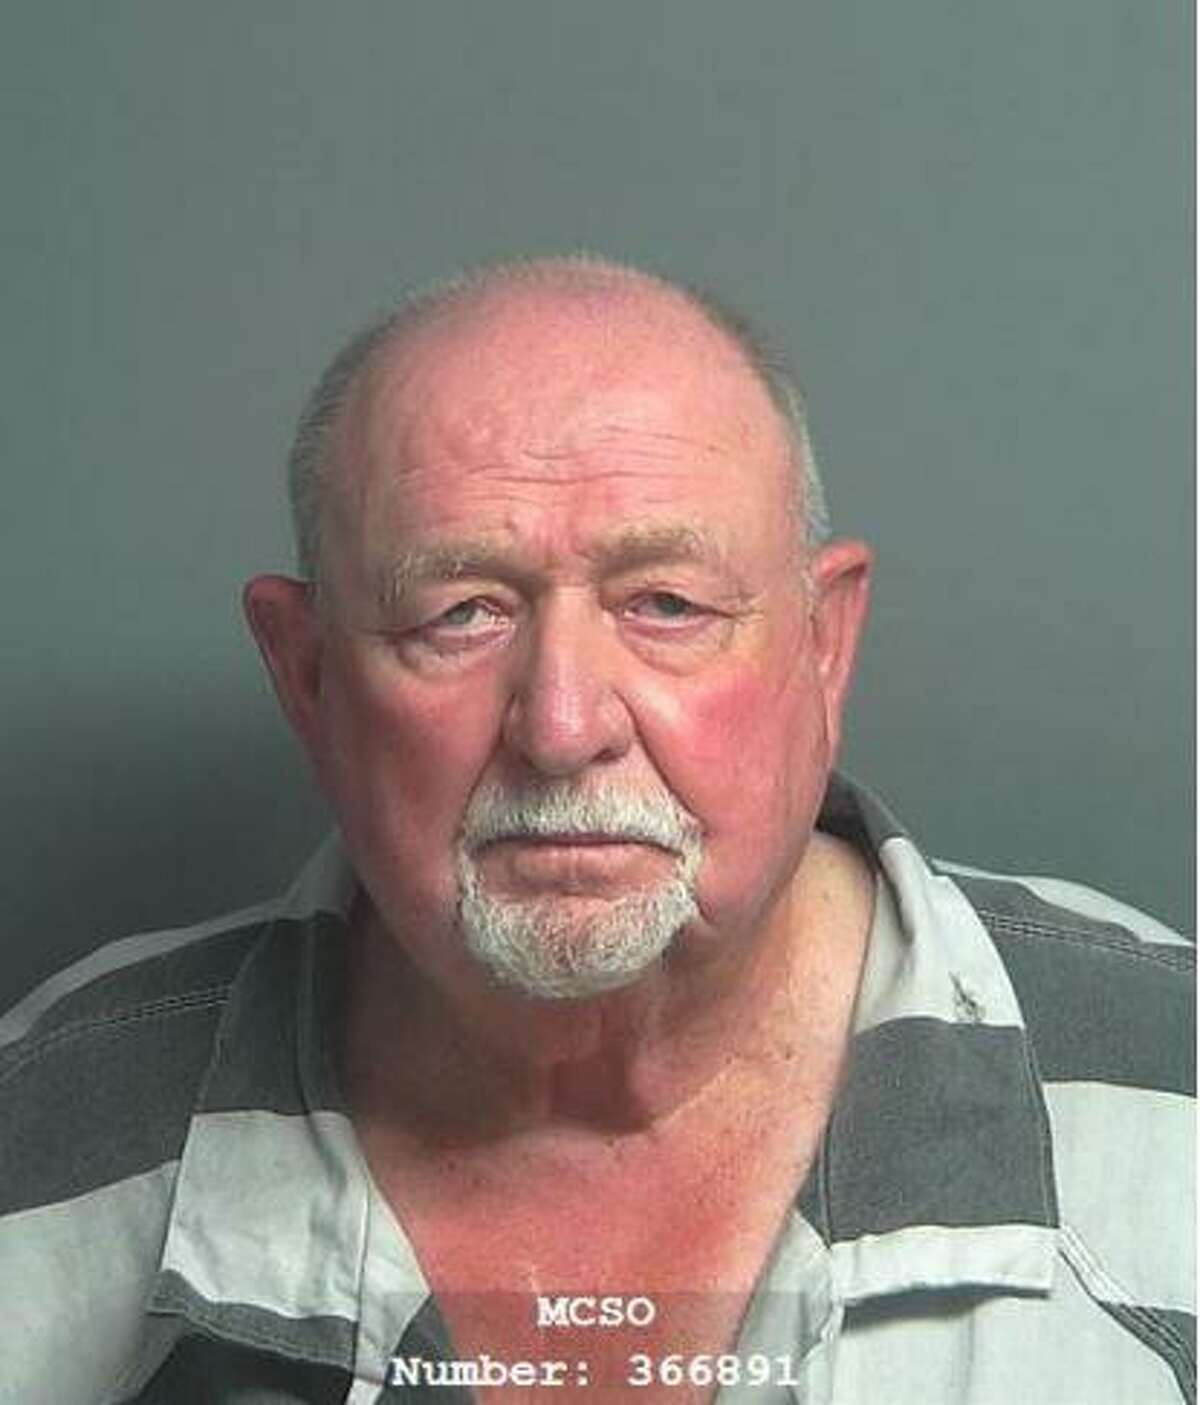 Rolf Meier, 76, of Montgomery, is being charged with animal cruelty, a third-degree felony,